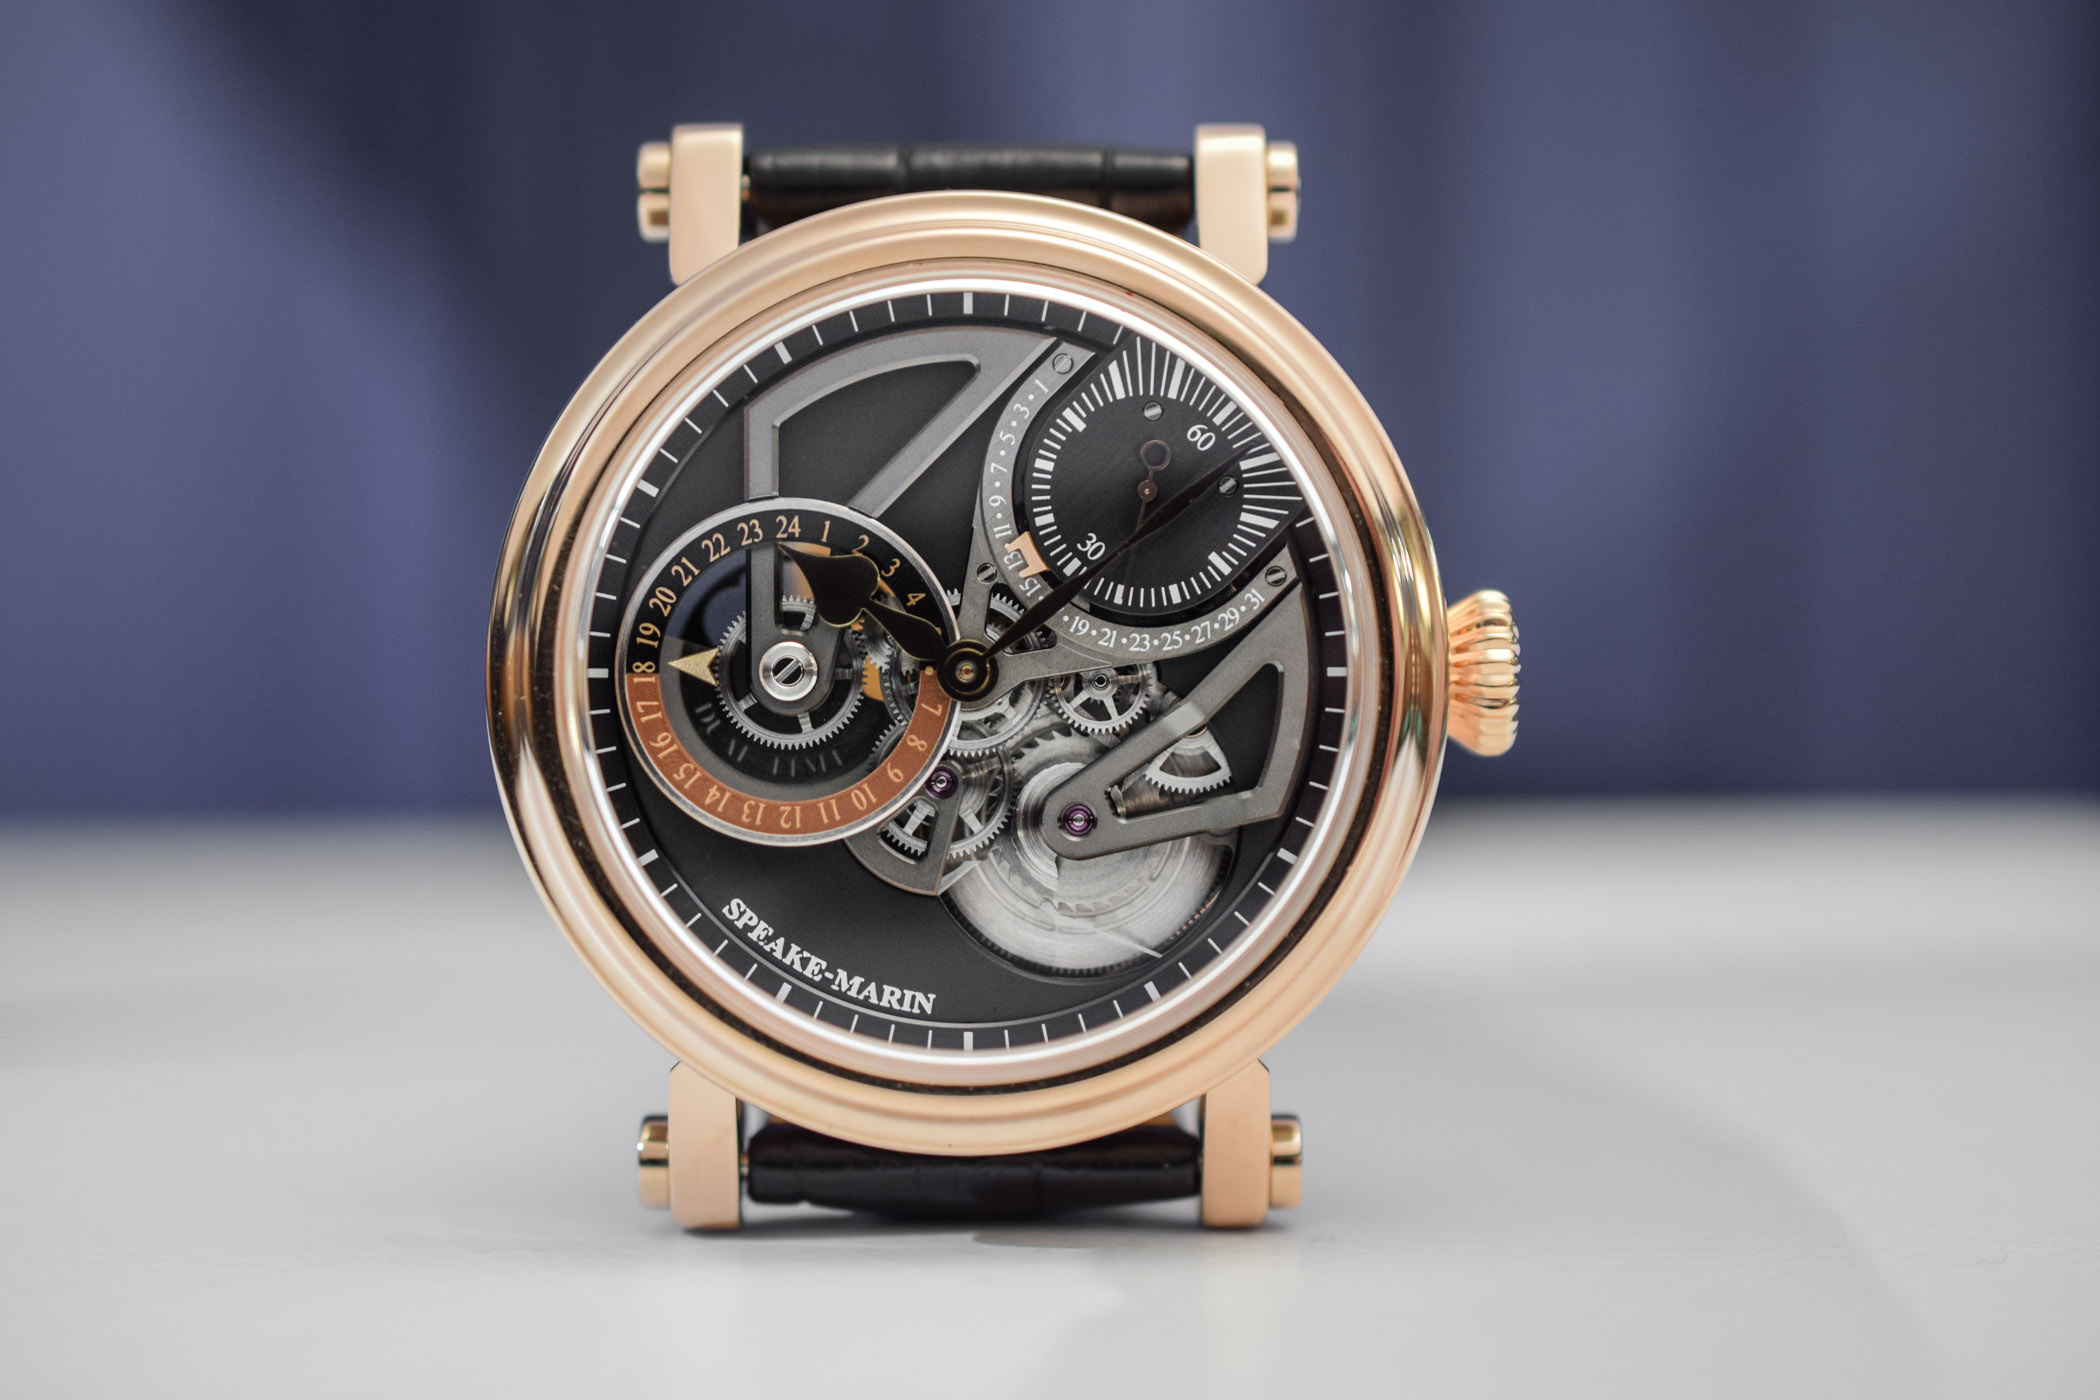 ef16be252c61 Hands-On - Speake-Marin One Two Openworked Dual Time (Specs   Price)